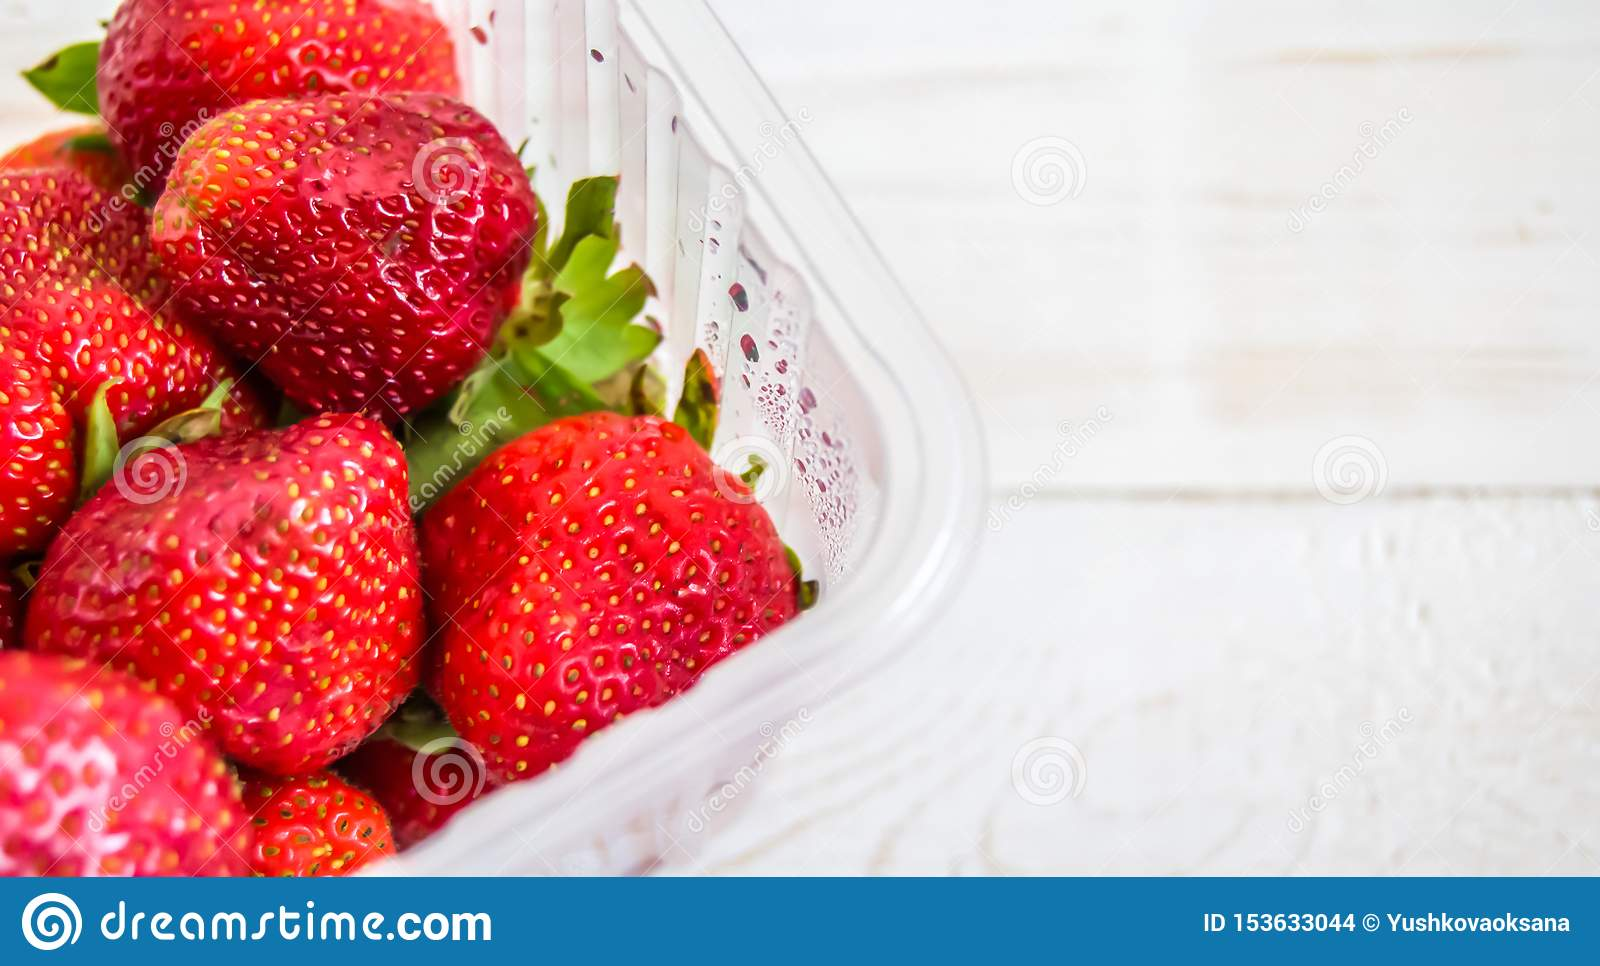 Plastic tray with red strawberries on a white wooden background